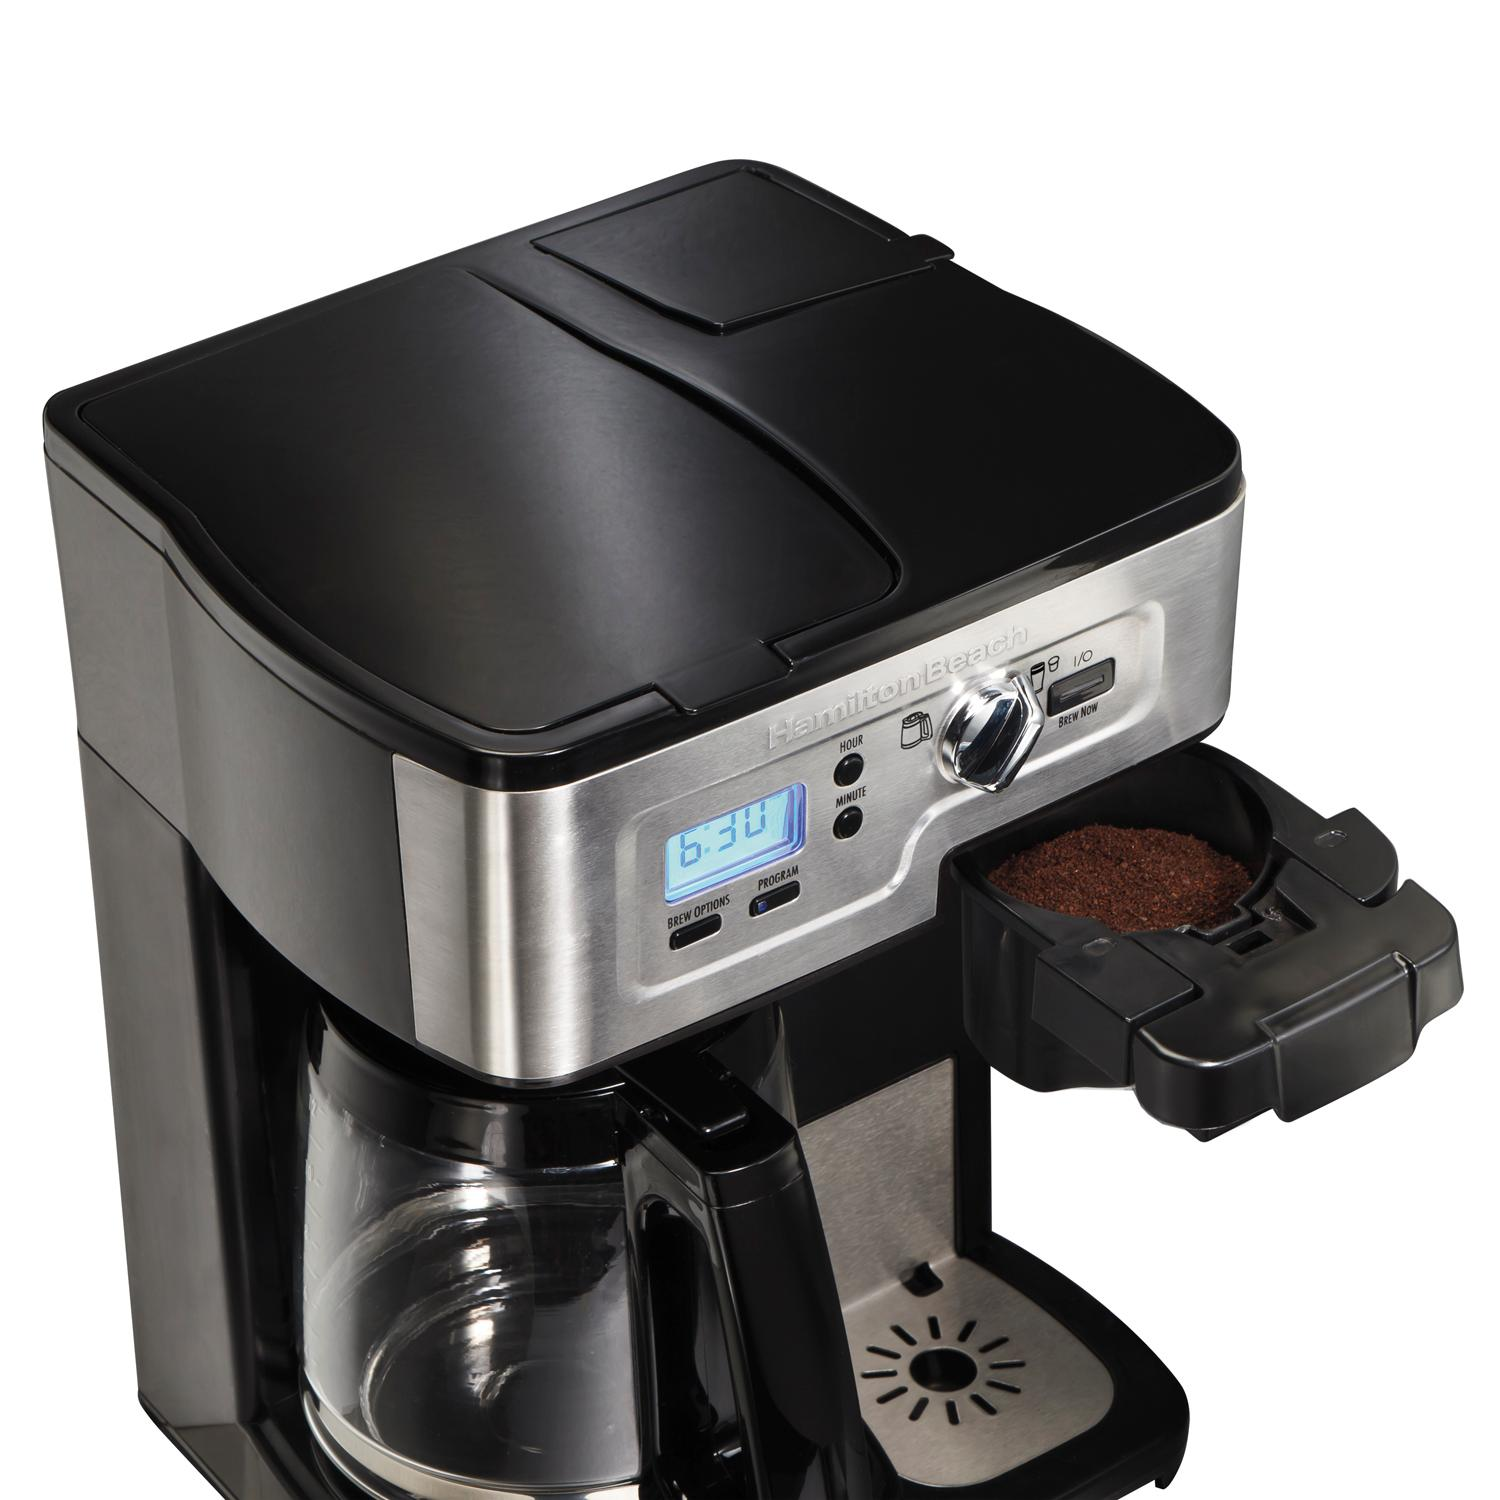 Coffee Maker Pot And Single : coffee maker k cup cups kcups keurig makers machine single serve one small mr. programmable